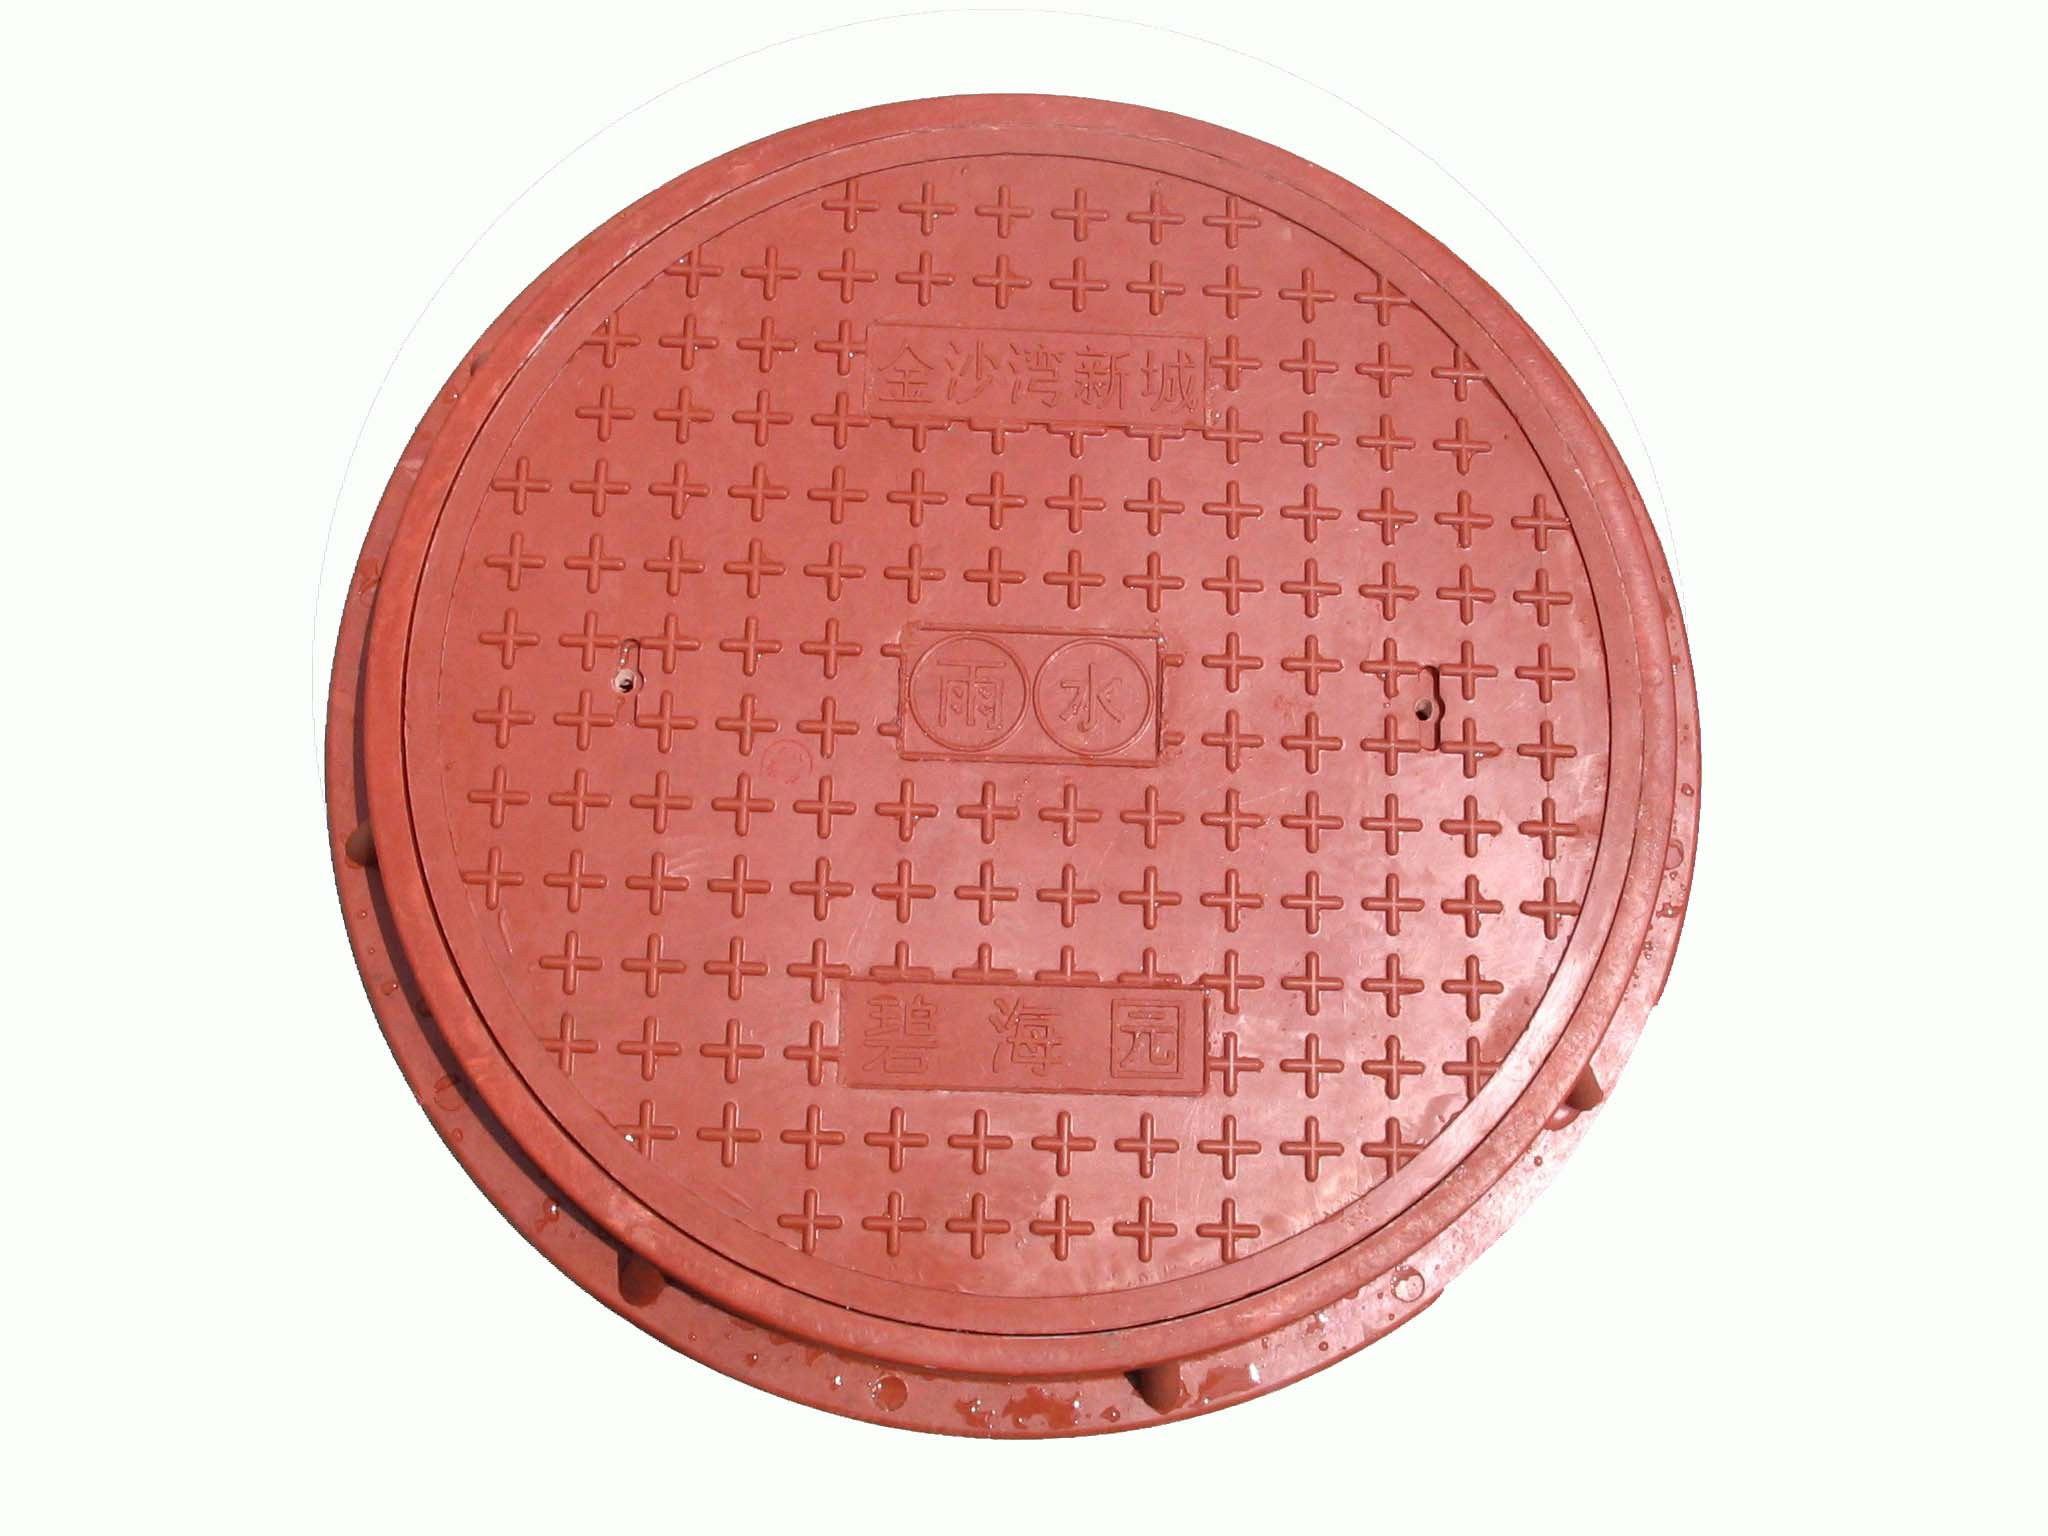 High quality 70070 mm anti-theft SMC round manhole cover with CE